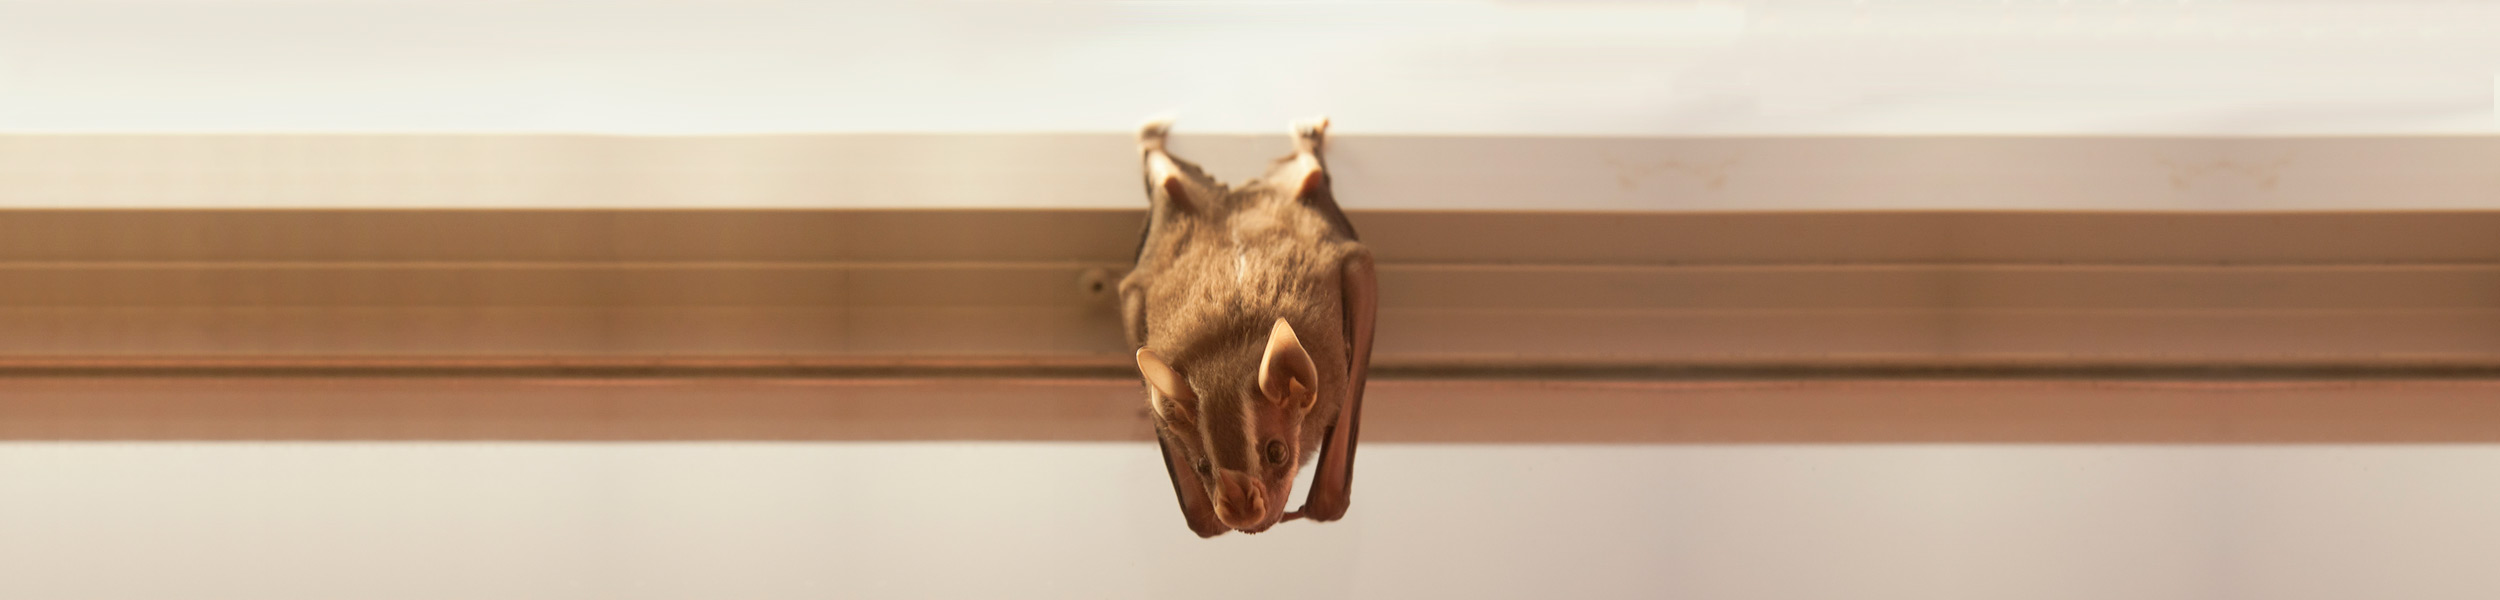 OPC-Pest-Control-Bat-In-House-Header-Comparison